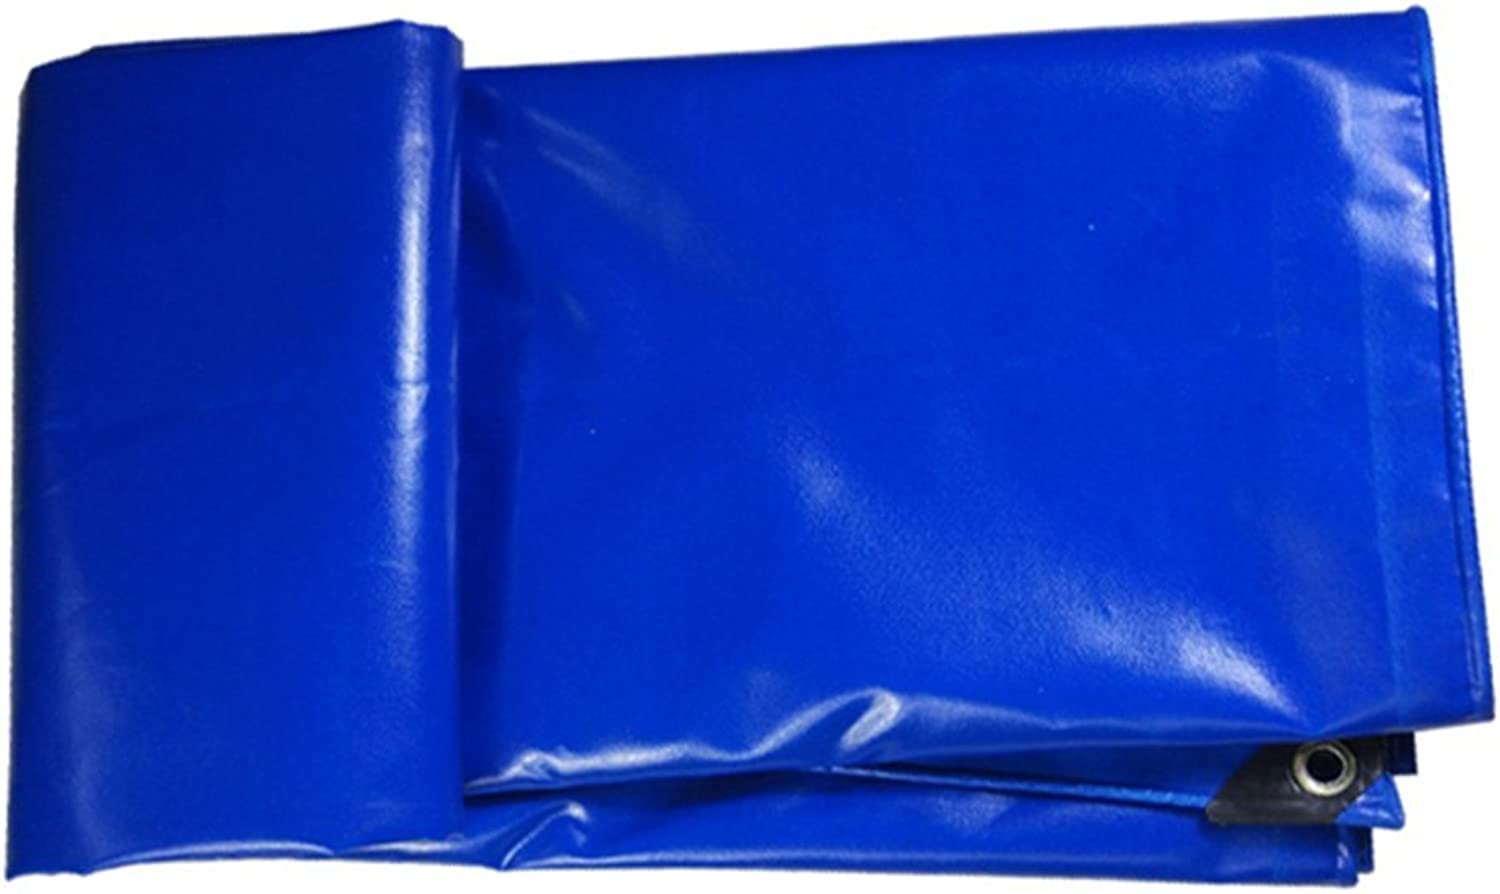 ATR Tarpaulins, Sturdy blueee polyplane Cover  Thick, Waterproof, UVResistant, redProof, TearResistant and TearResistant Tarpaulin with Reinforced and Reinforced Edges 500g   m\ 0,5 mm for outdoo